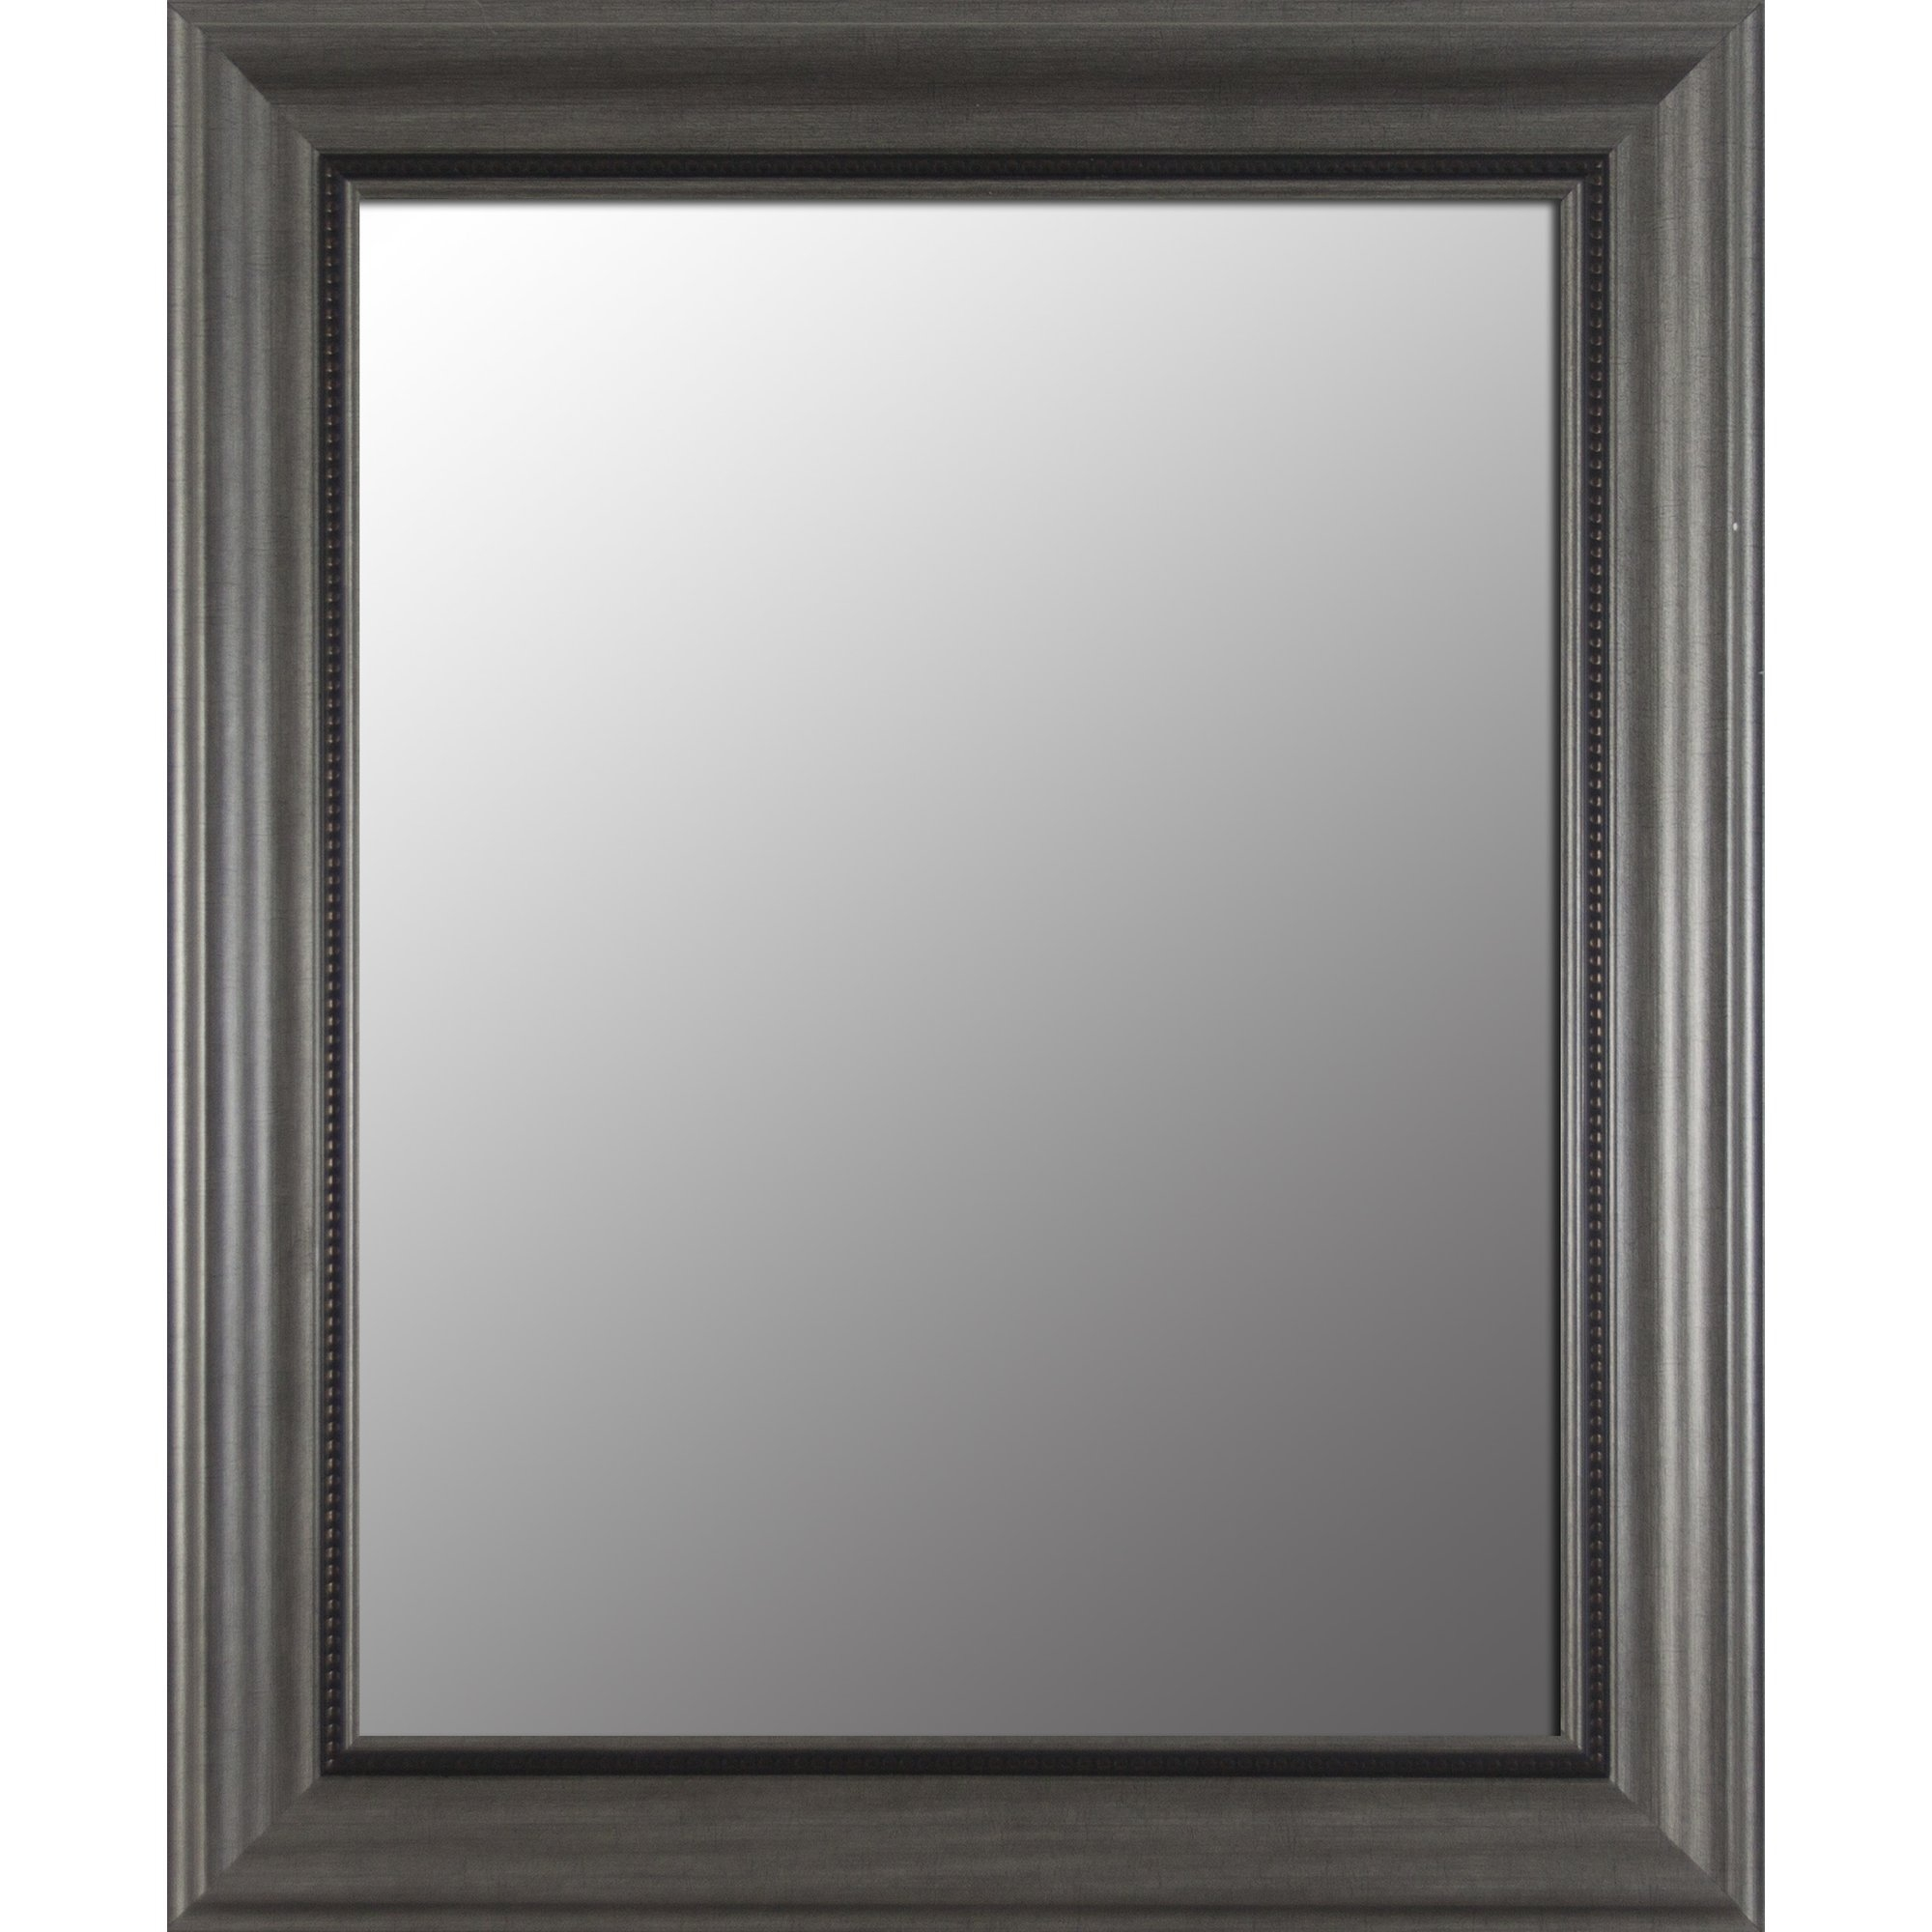 Decor Therapy Pewter Bevel Wall Mirror Reviews Wayfair In Bevel Mirror (Image 8 of 15)